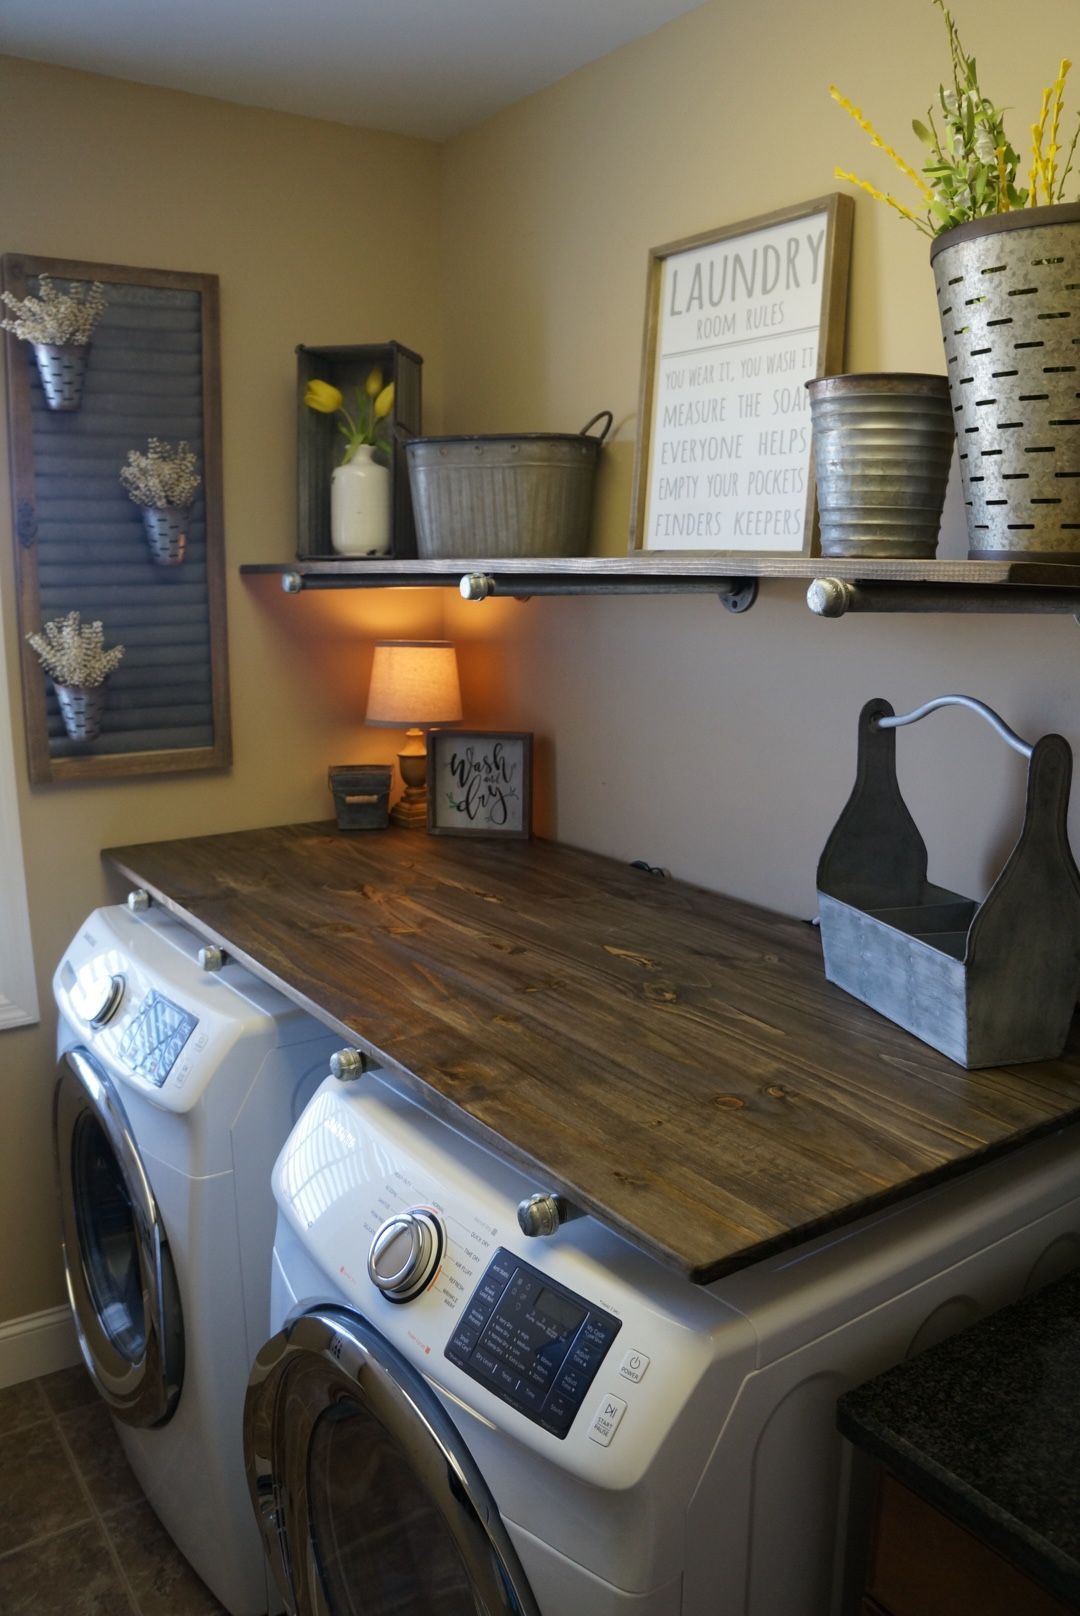 How to do a mini Laundry Room Makeover with Rustic Industrial Pipe Shelves  for under $250